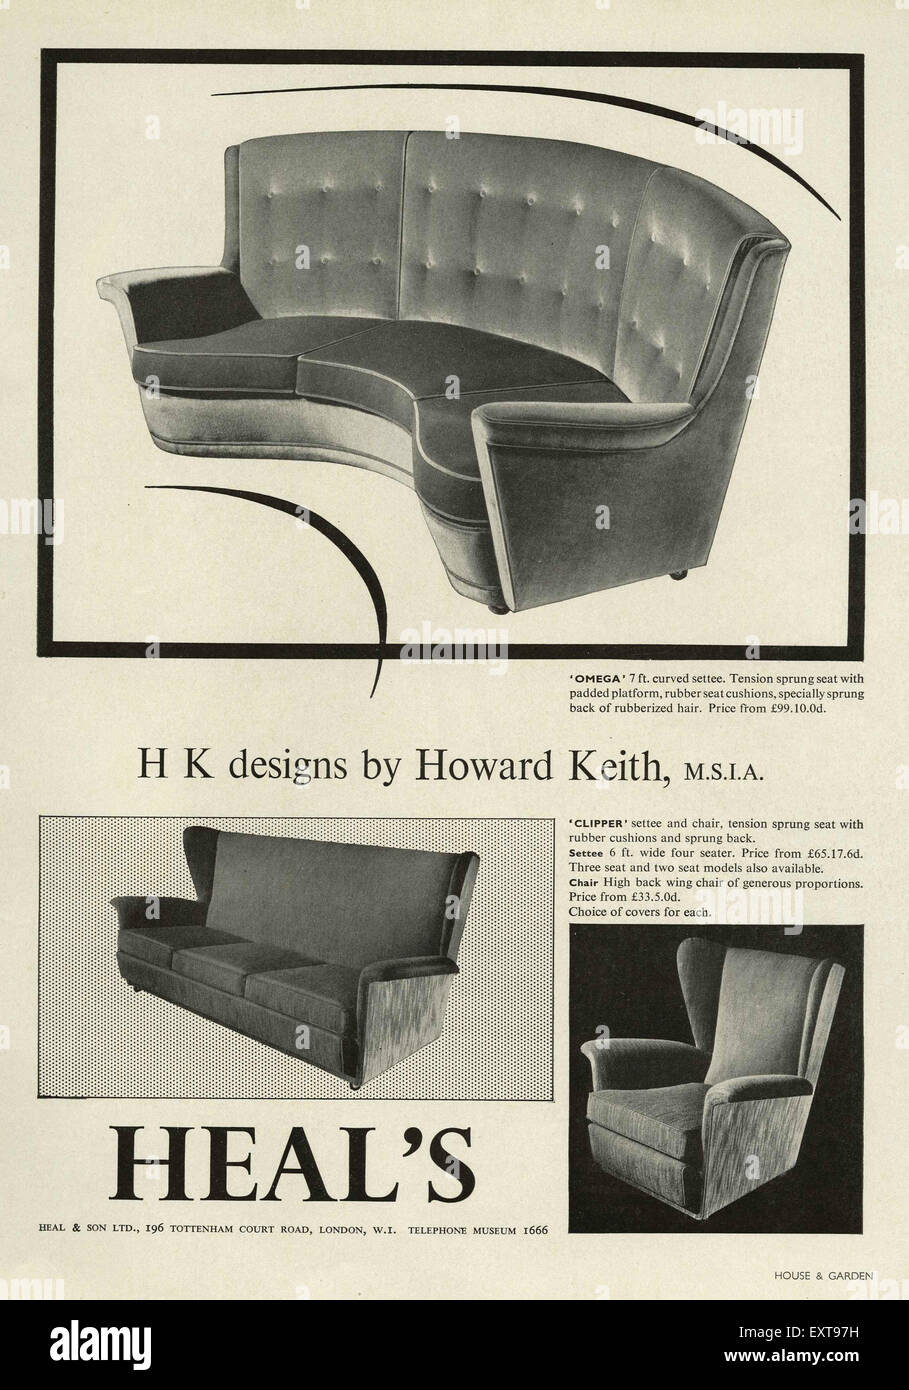 Surprising 1950S Uk Heals Magazine Advert Stock Photo 85356645 Alamy Andrewgaddart Wooden Chair Designs For Living Room Andrewgaddartcom